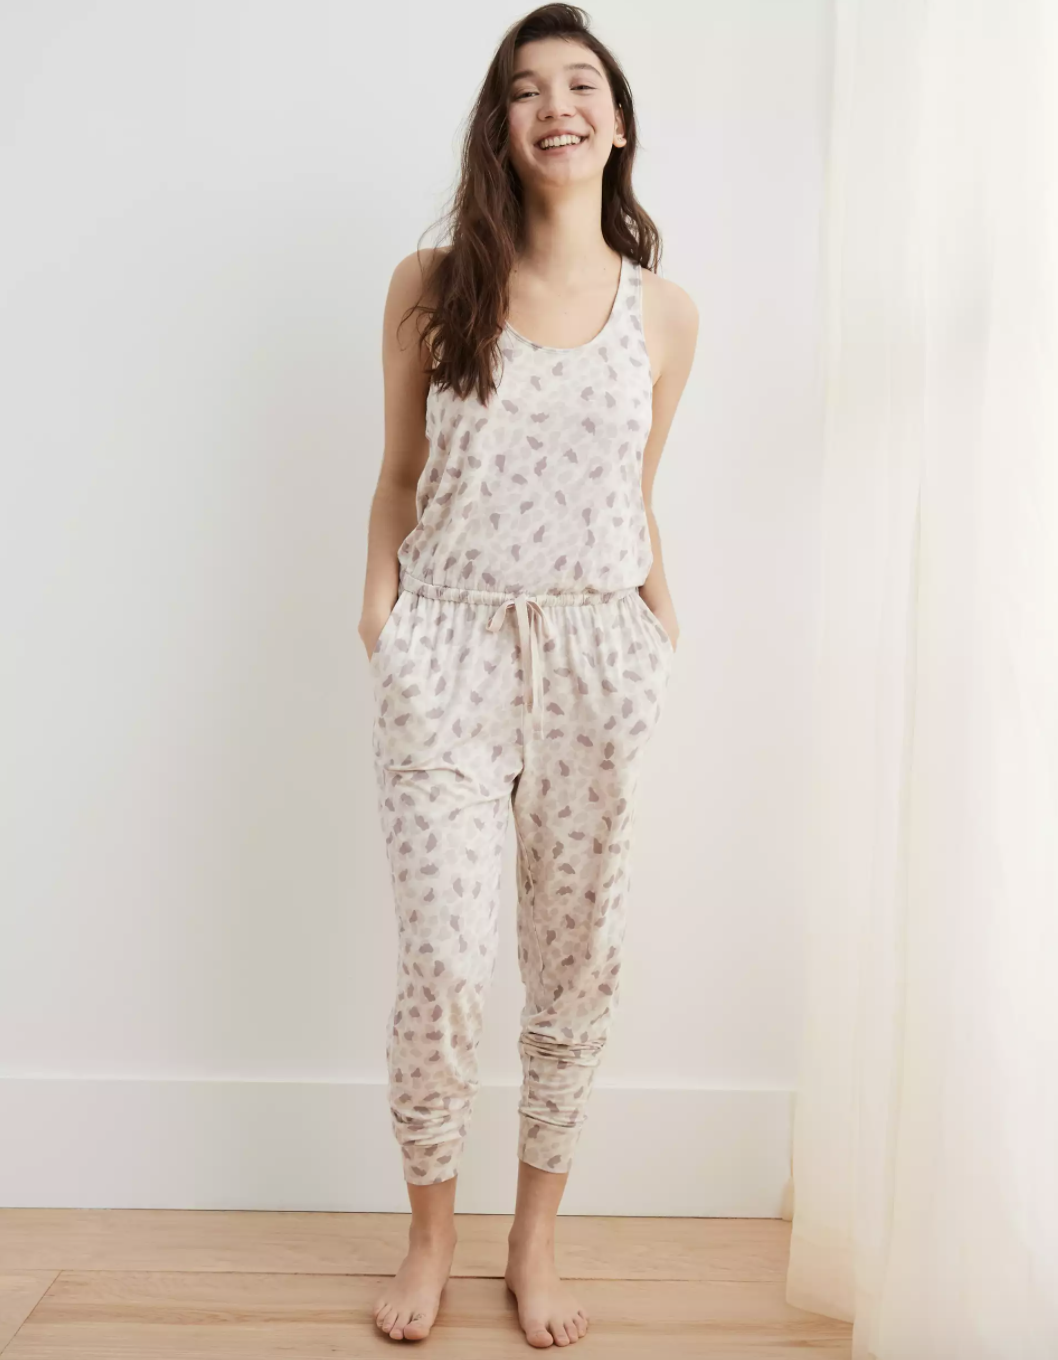 A model standing in a white bedroom setting wearing the comfy jumpsuit